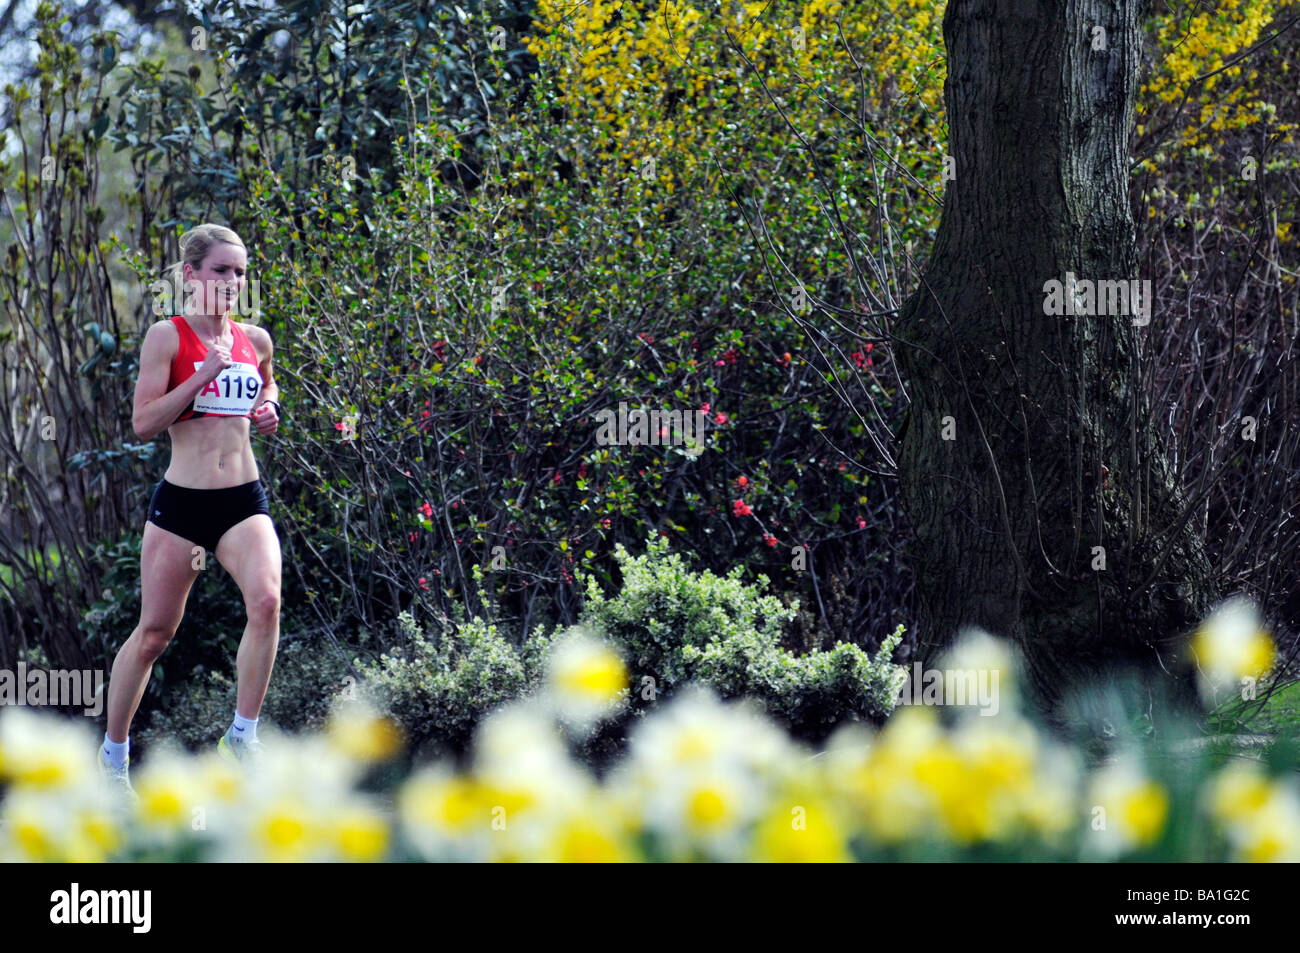 runner in northern athletics six stage road relay championship in stockport - Stock Image